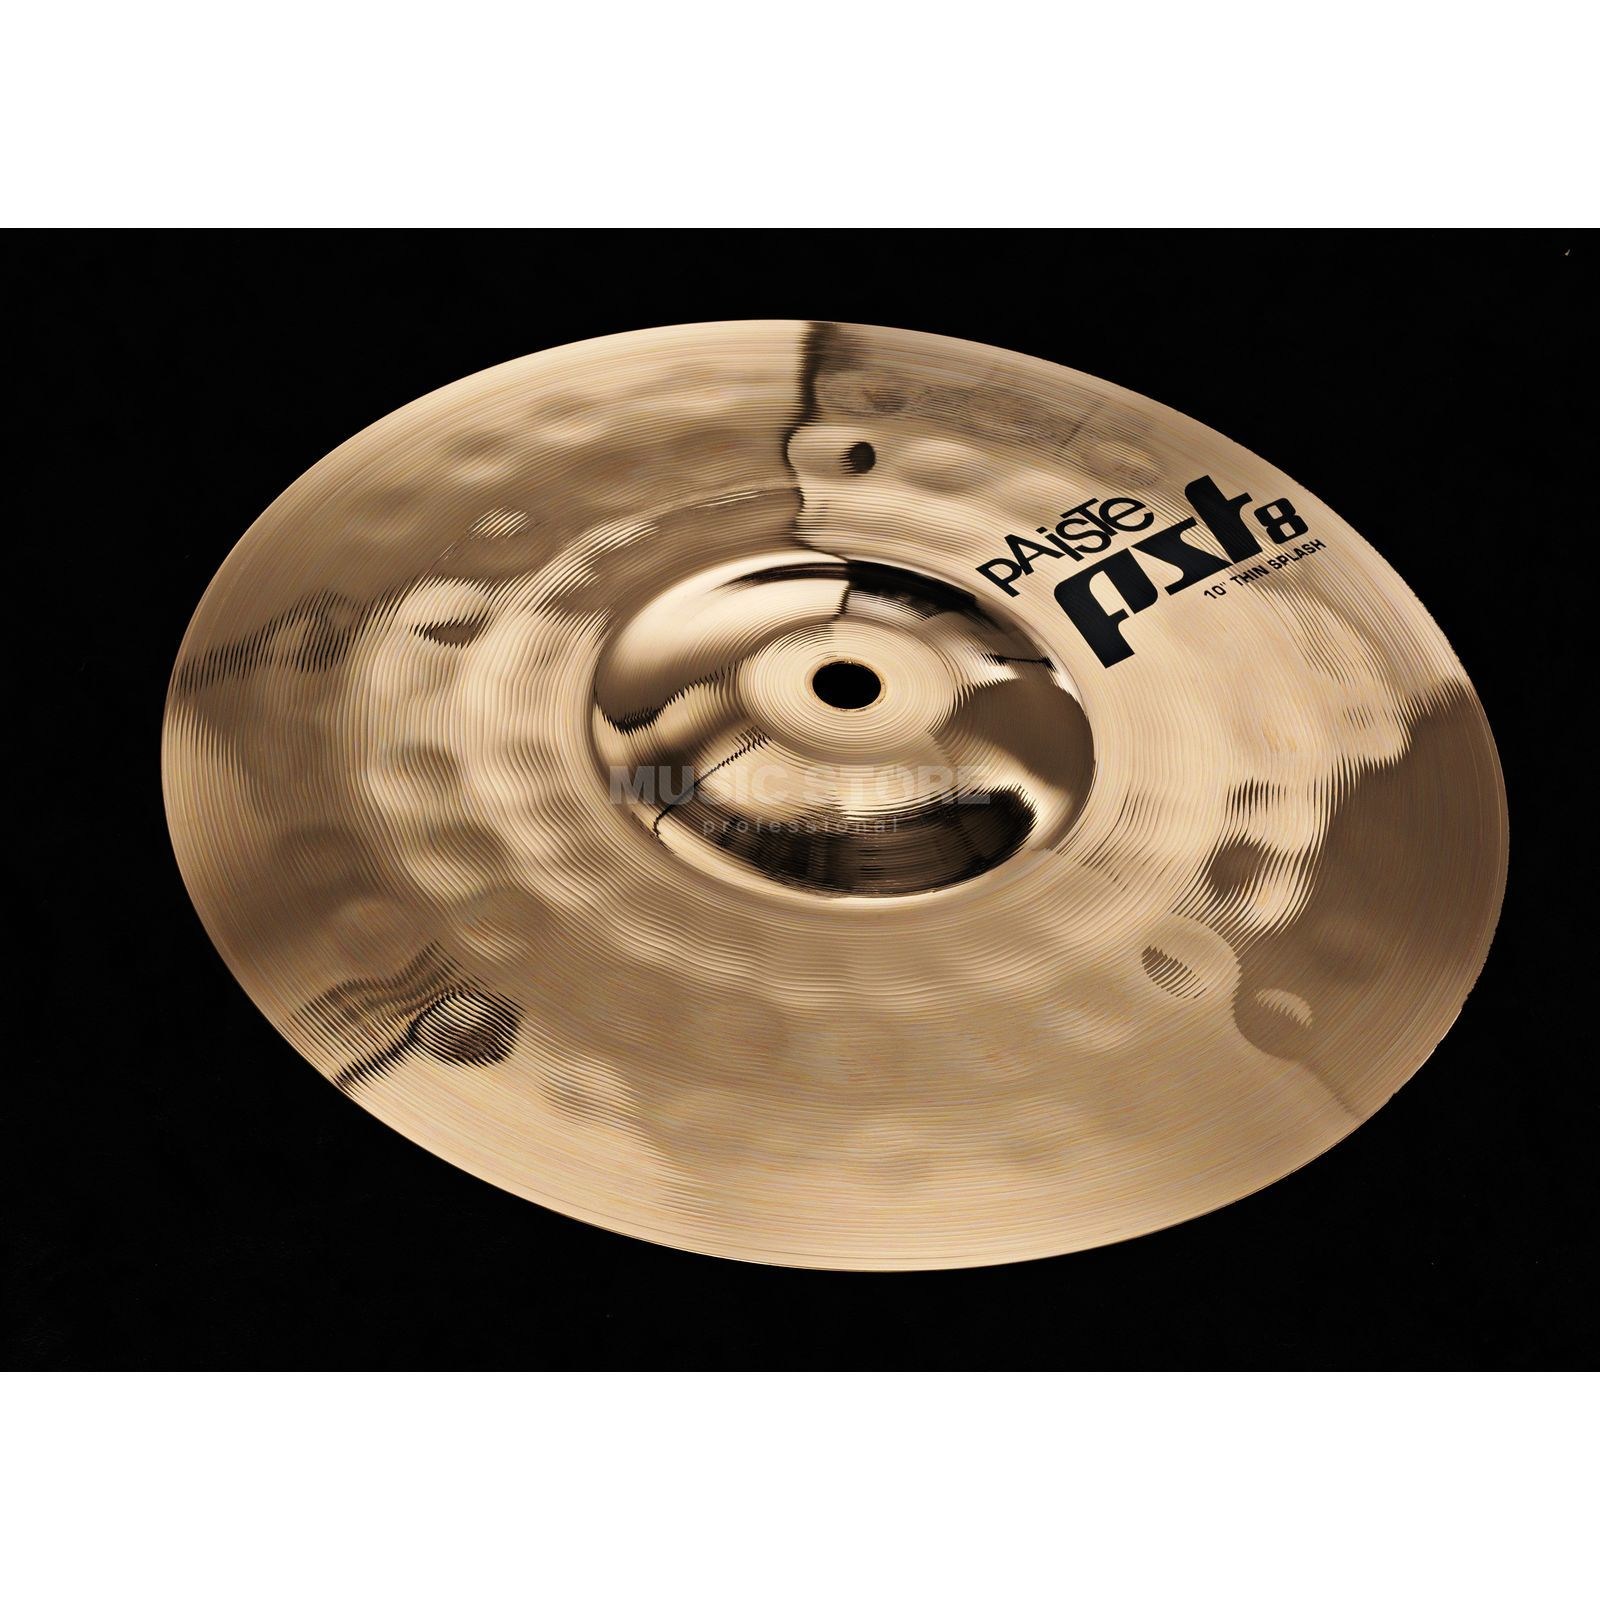 "Paiste PST8 Thin Splash 10"", Reflector Finish Produktbild"